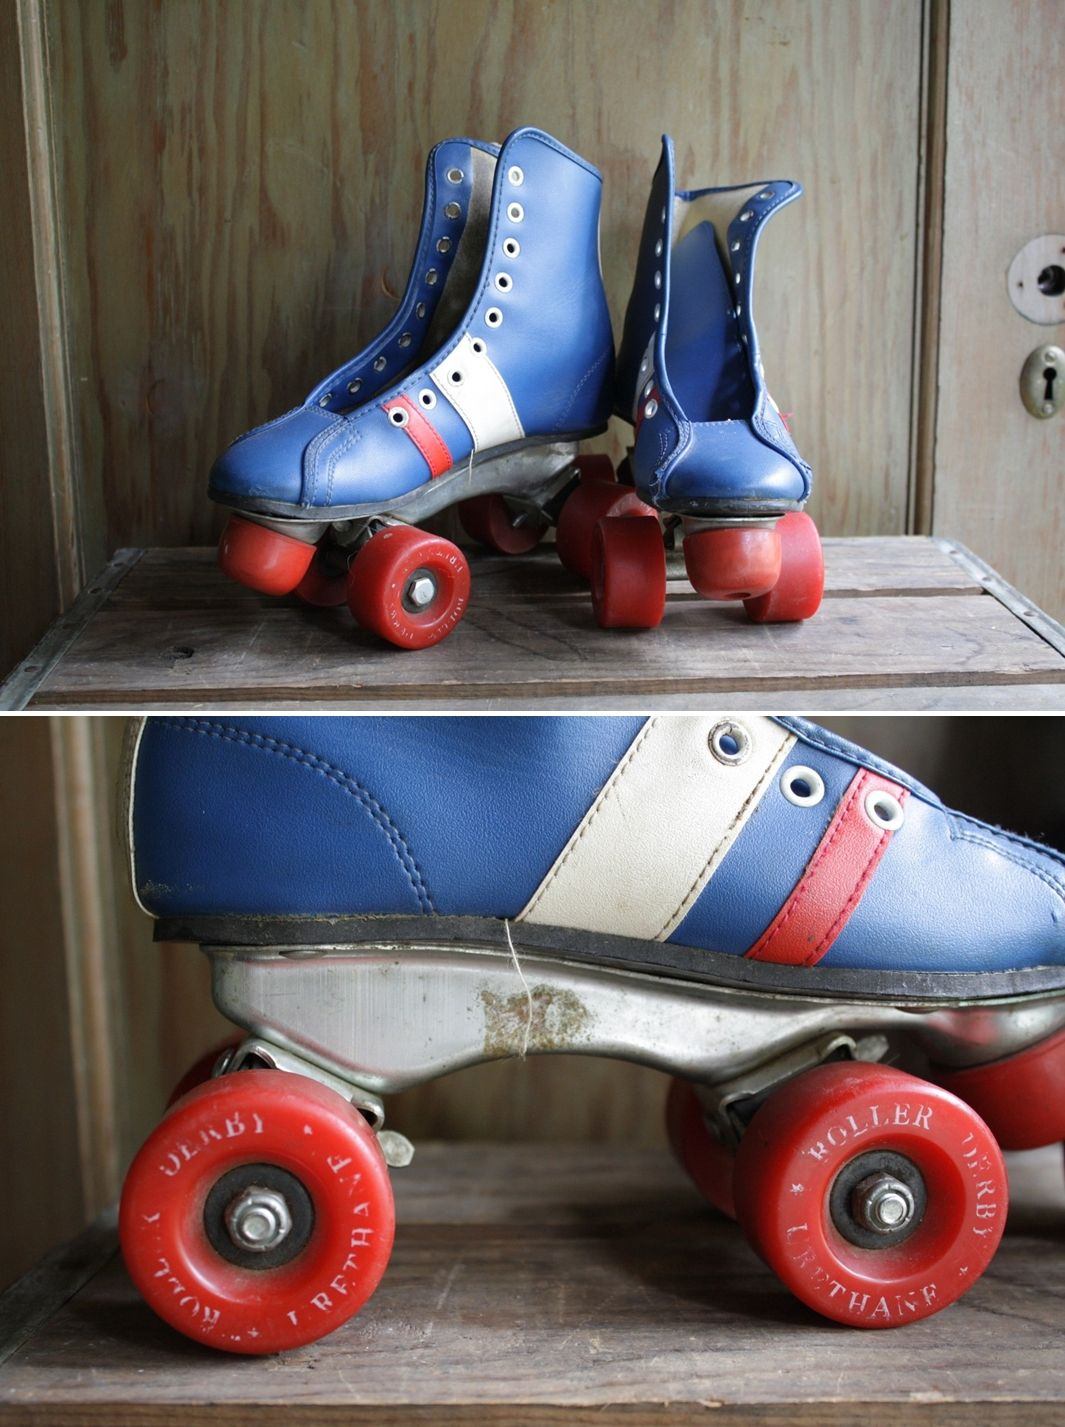 Roller skates jcpenney - 11 Best Images About Patines On Pinterest Posts Memories And Urban Outfitters